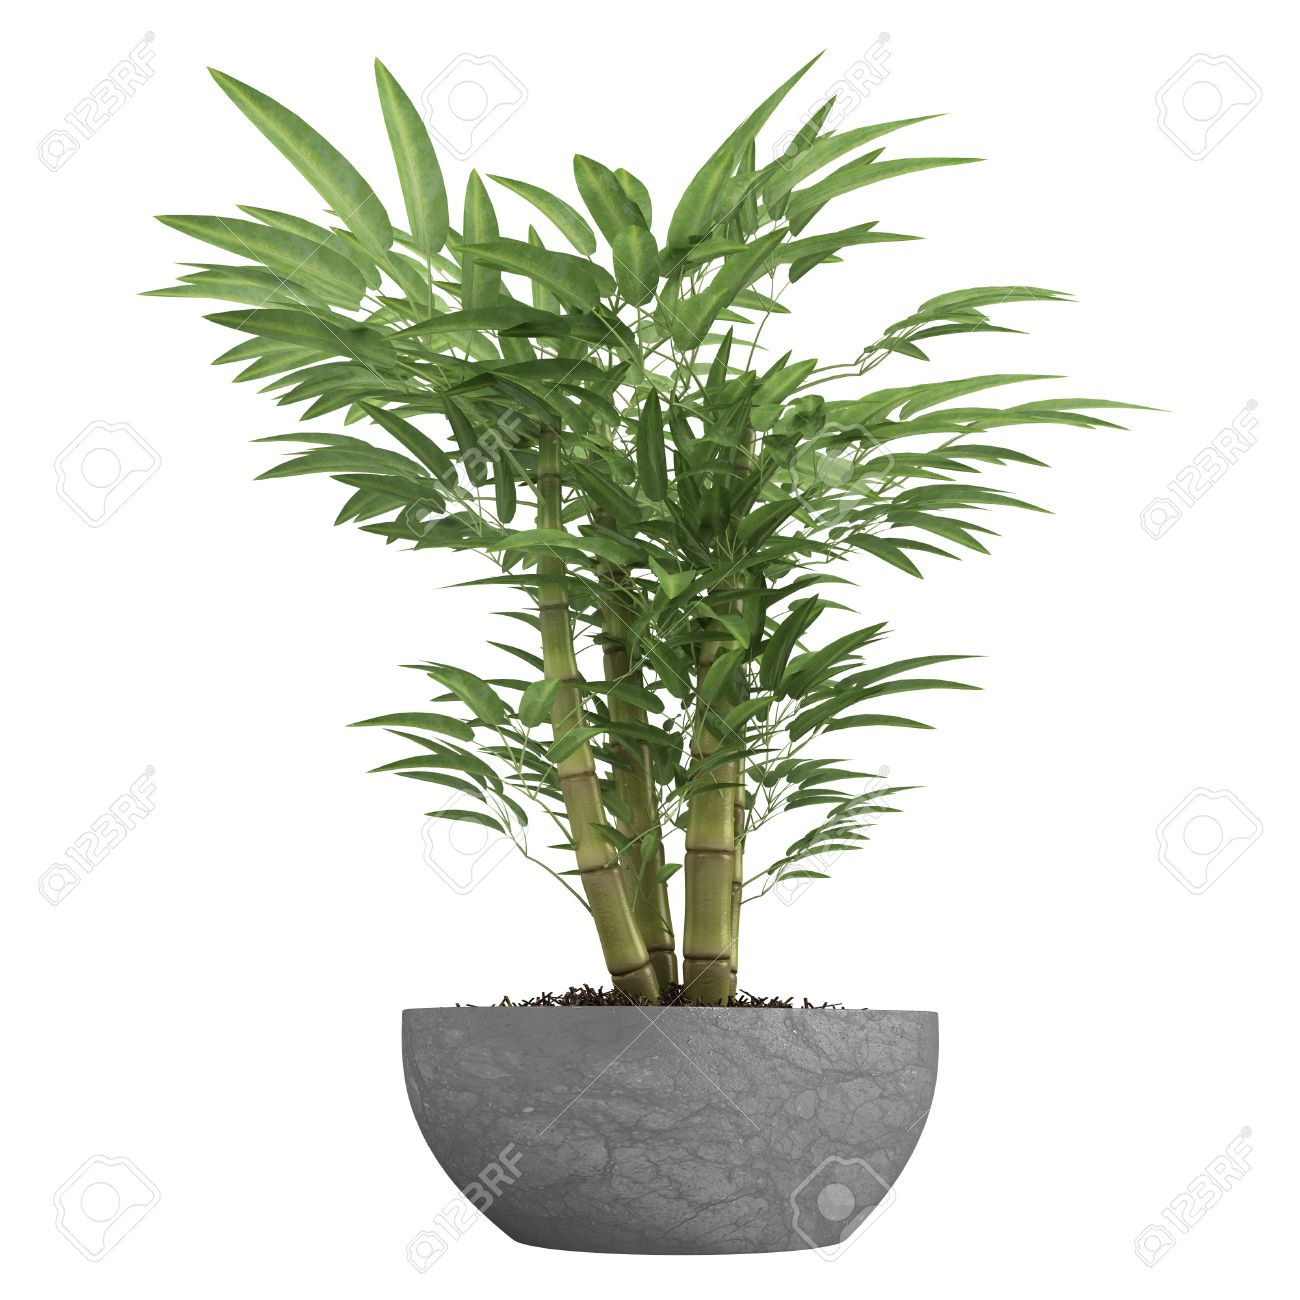 Ornamental bamboo growing in a container as a decorative houseplant  isolated on white Stock Photo -